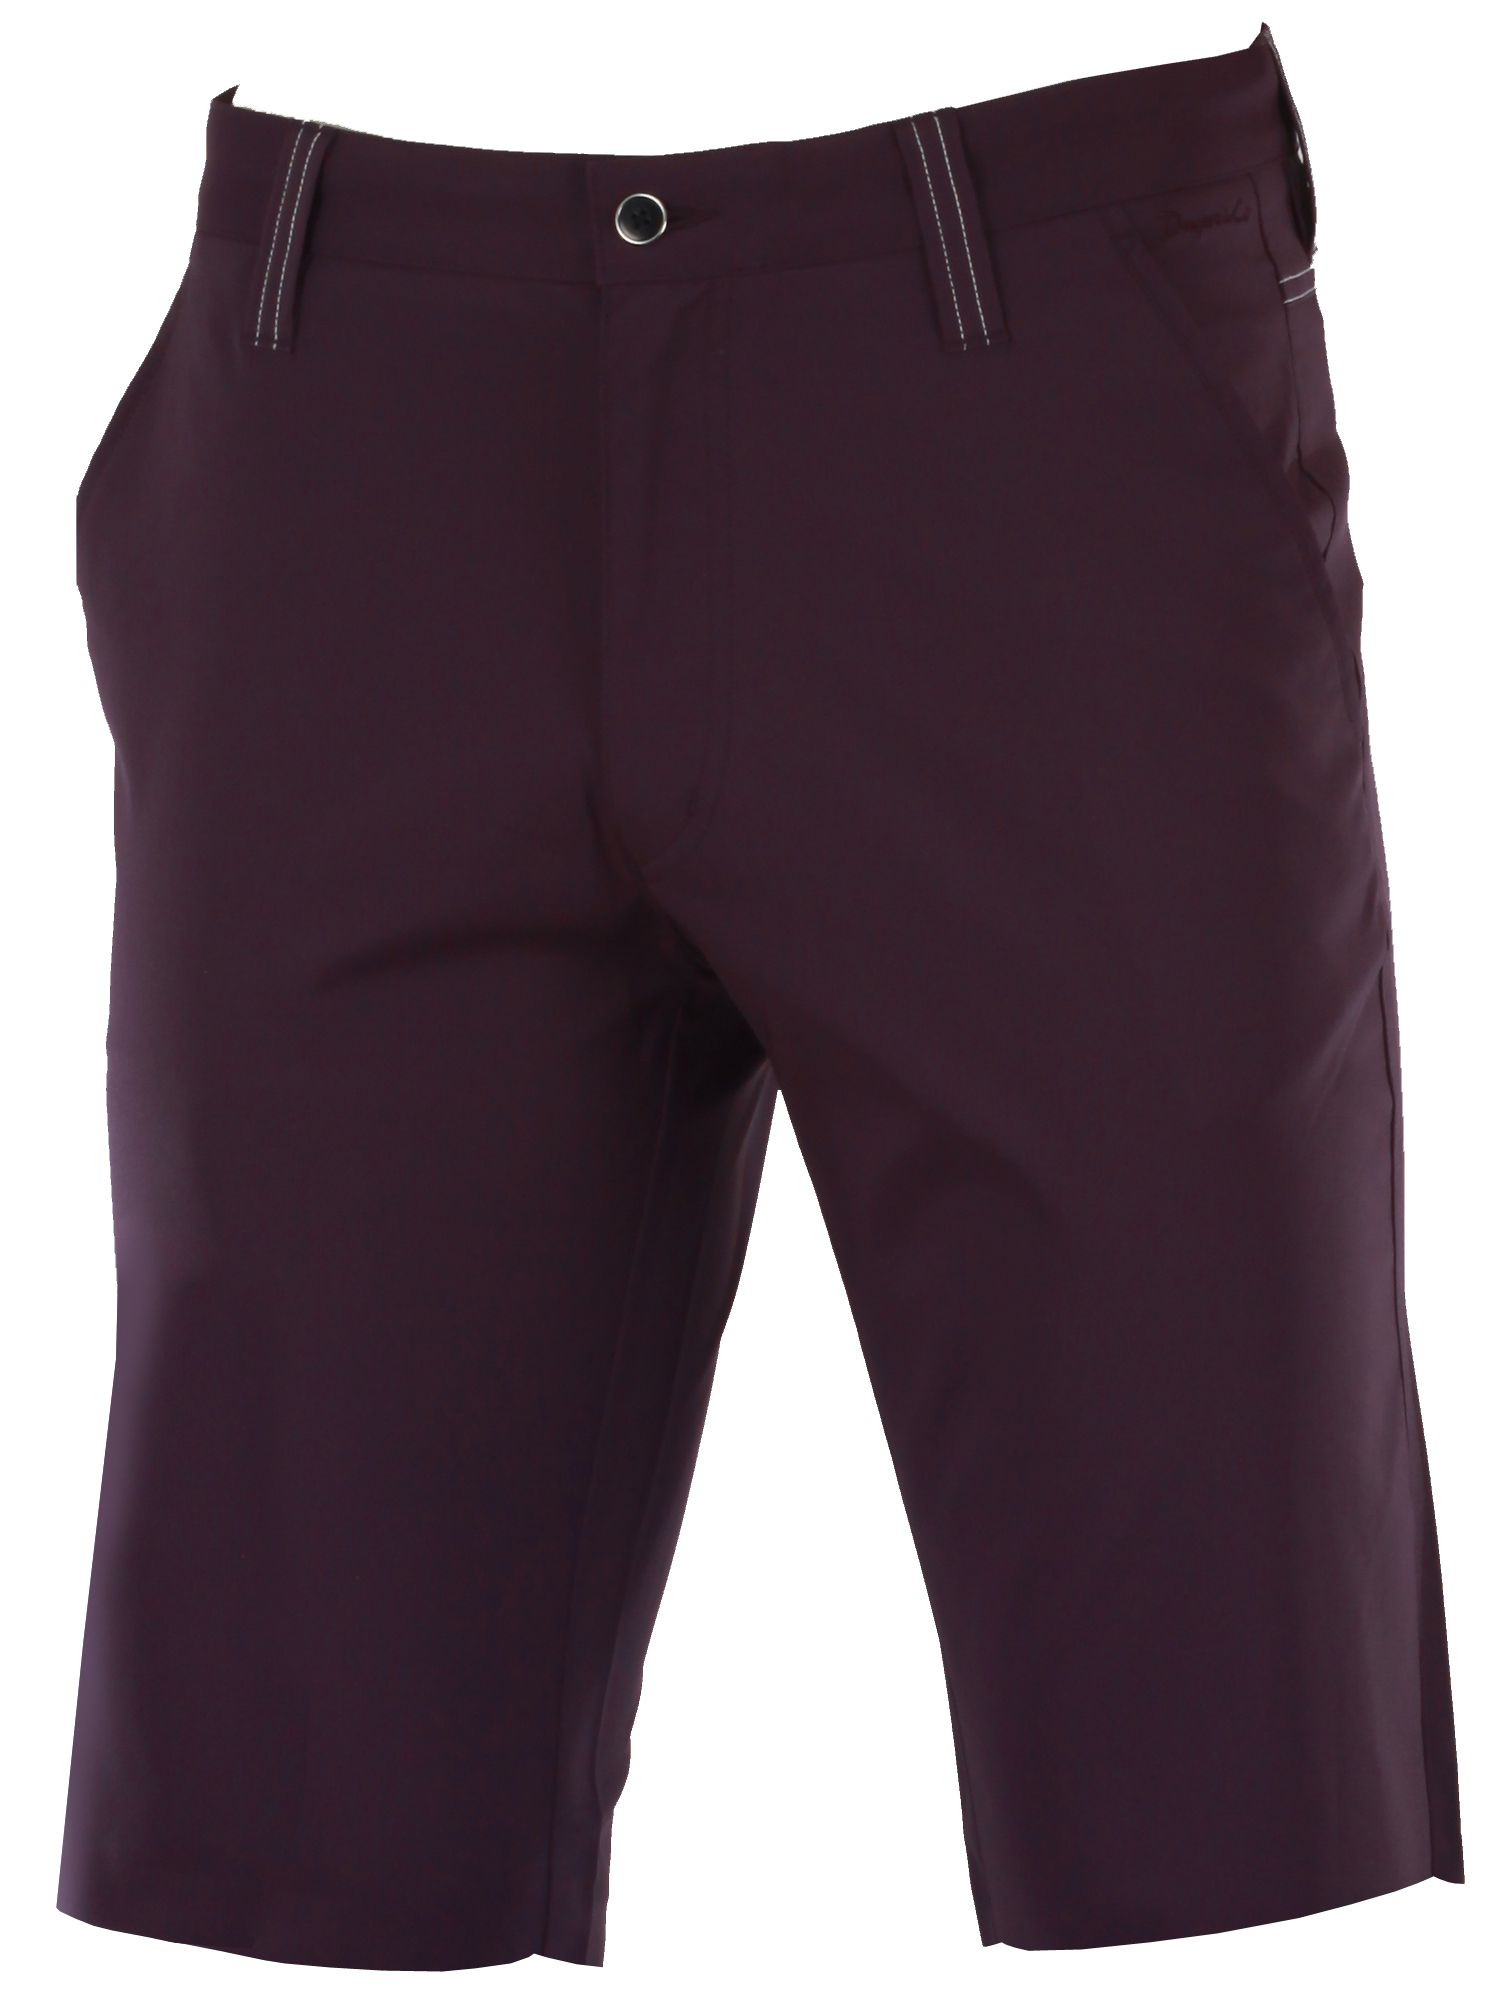 Dwyers and Co Men's Dwyers and Co Micro Tech 2.0 shorts, Grape